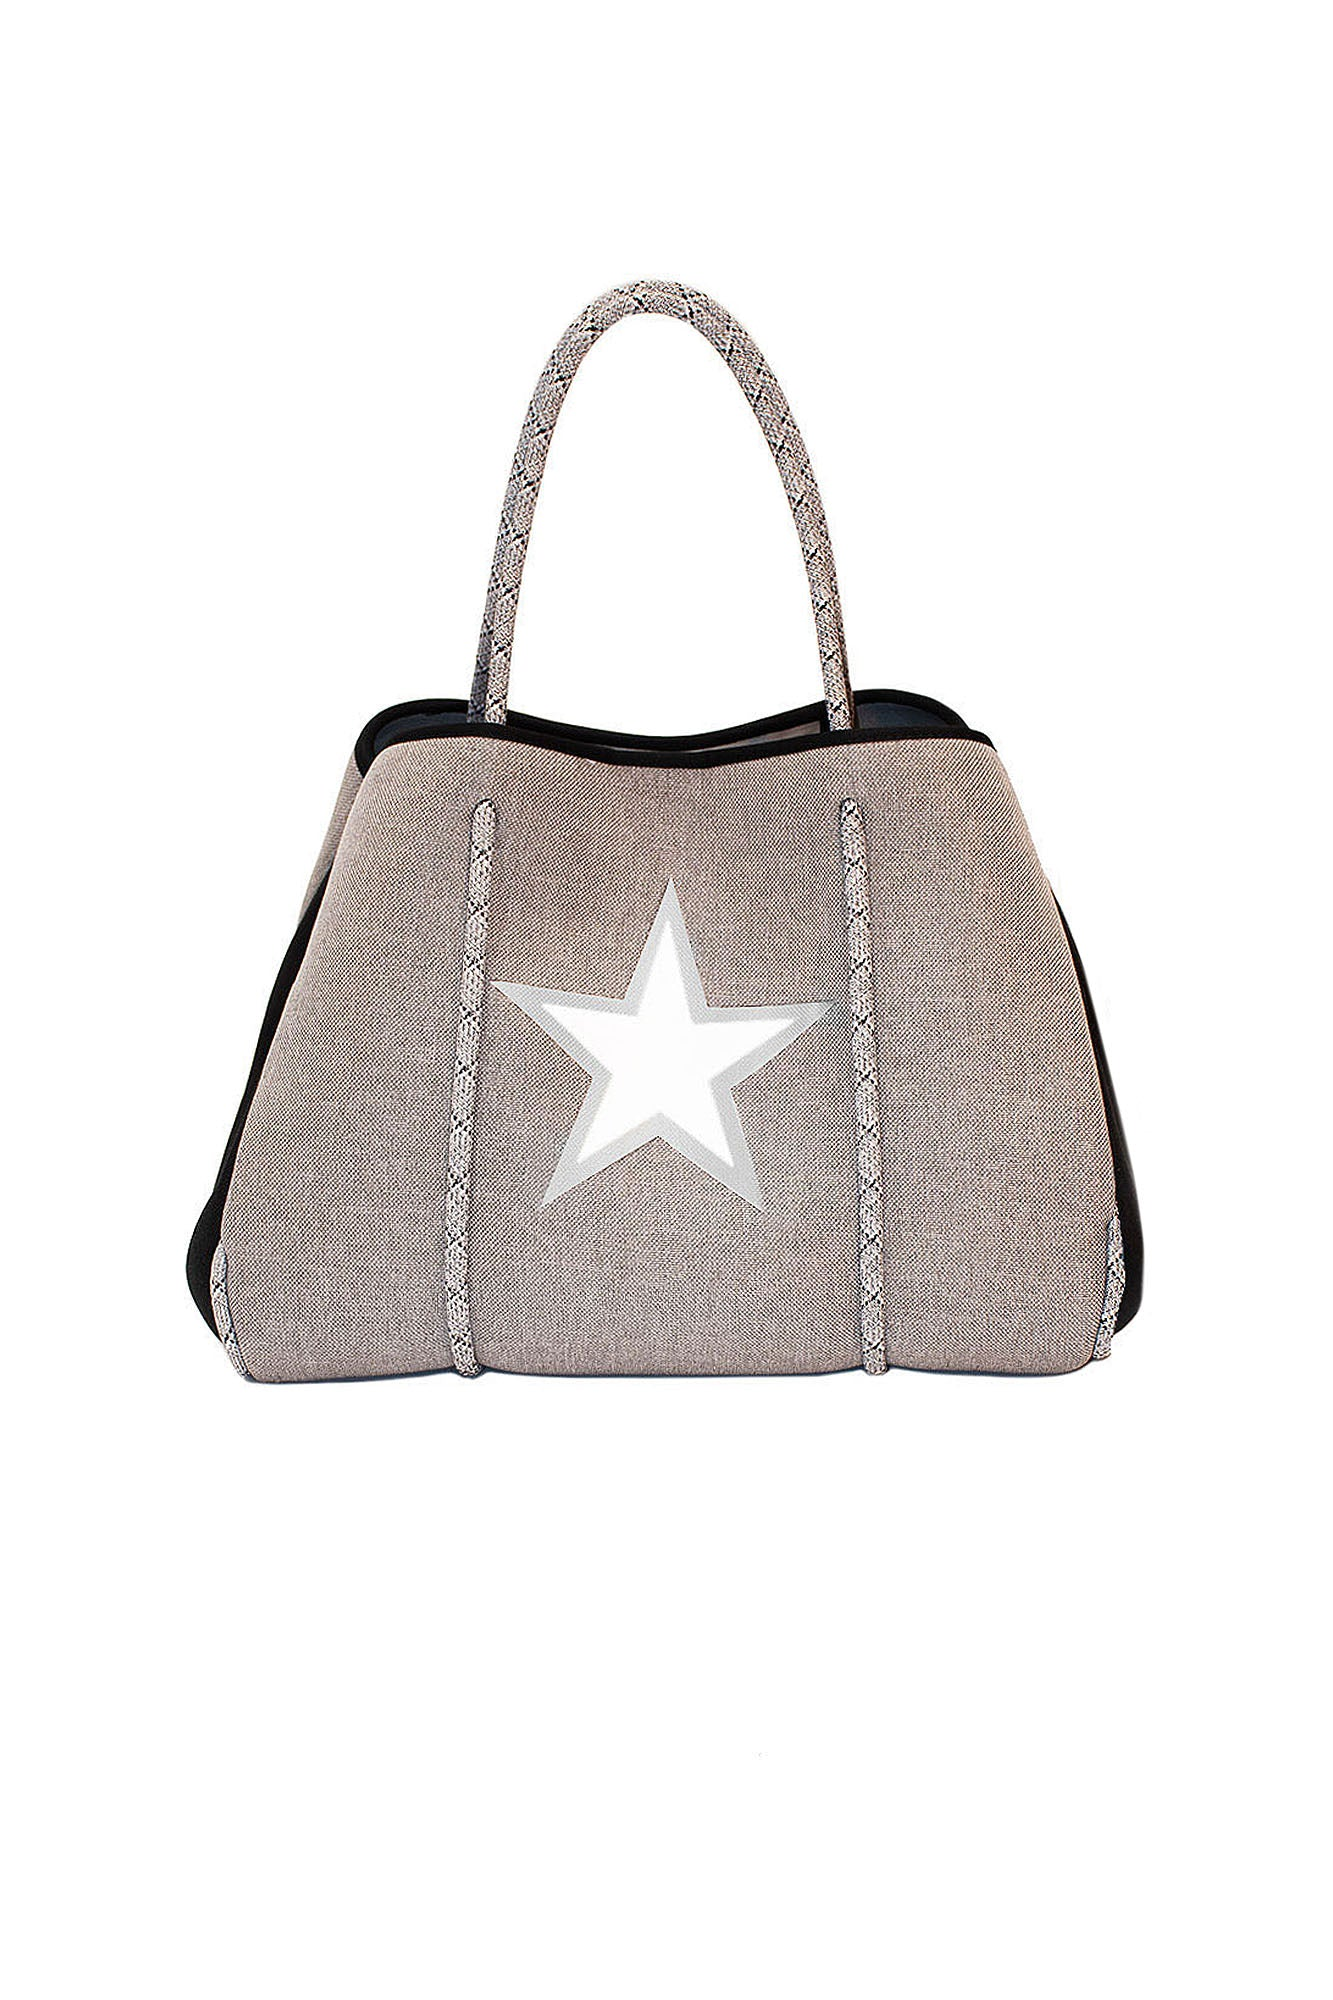 Haute Shore - Greyson Wonder Neoprene Tote Bag w/Zipper Wristlet Inside (Wonder, Gray Canvas w/White Star)